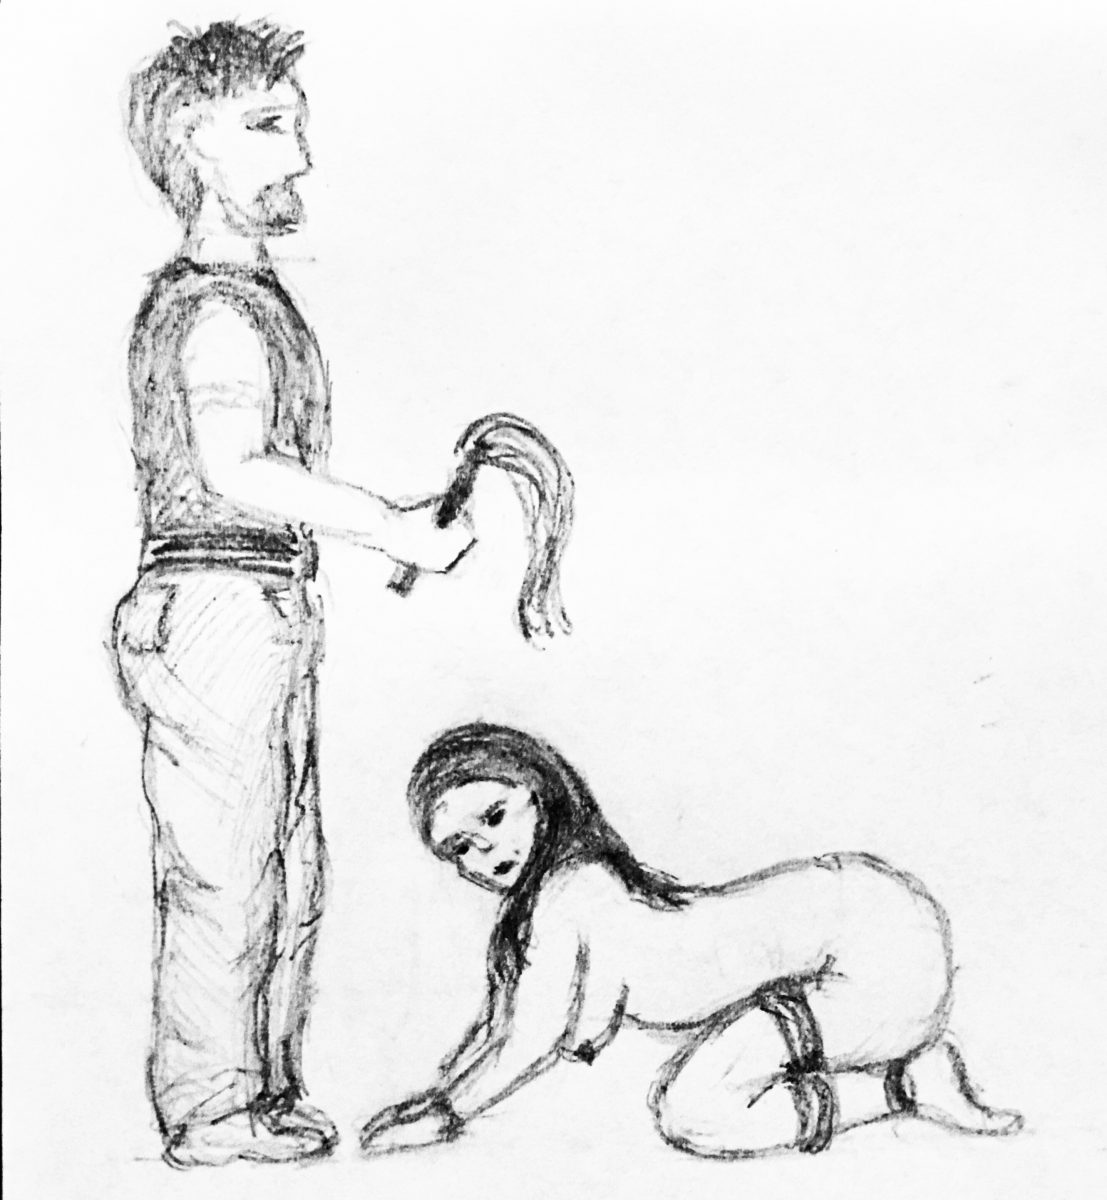 Sketch of bearded man in jeans wielding flogger and naked woman tied on her knees